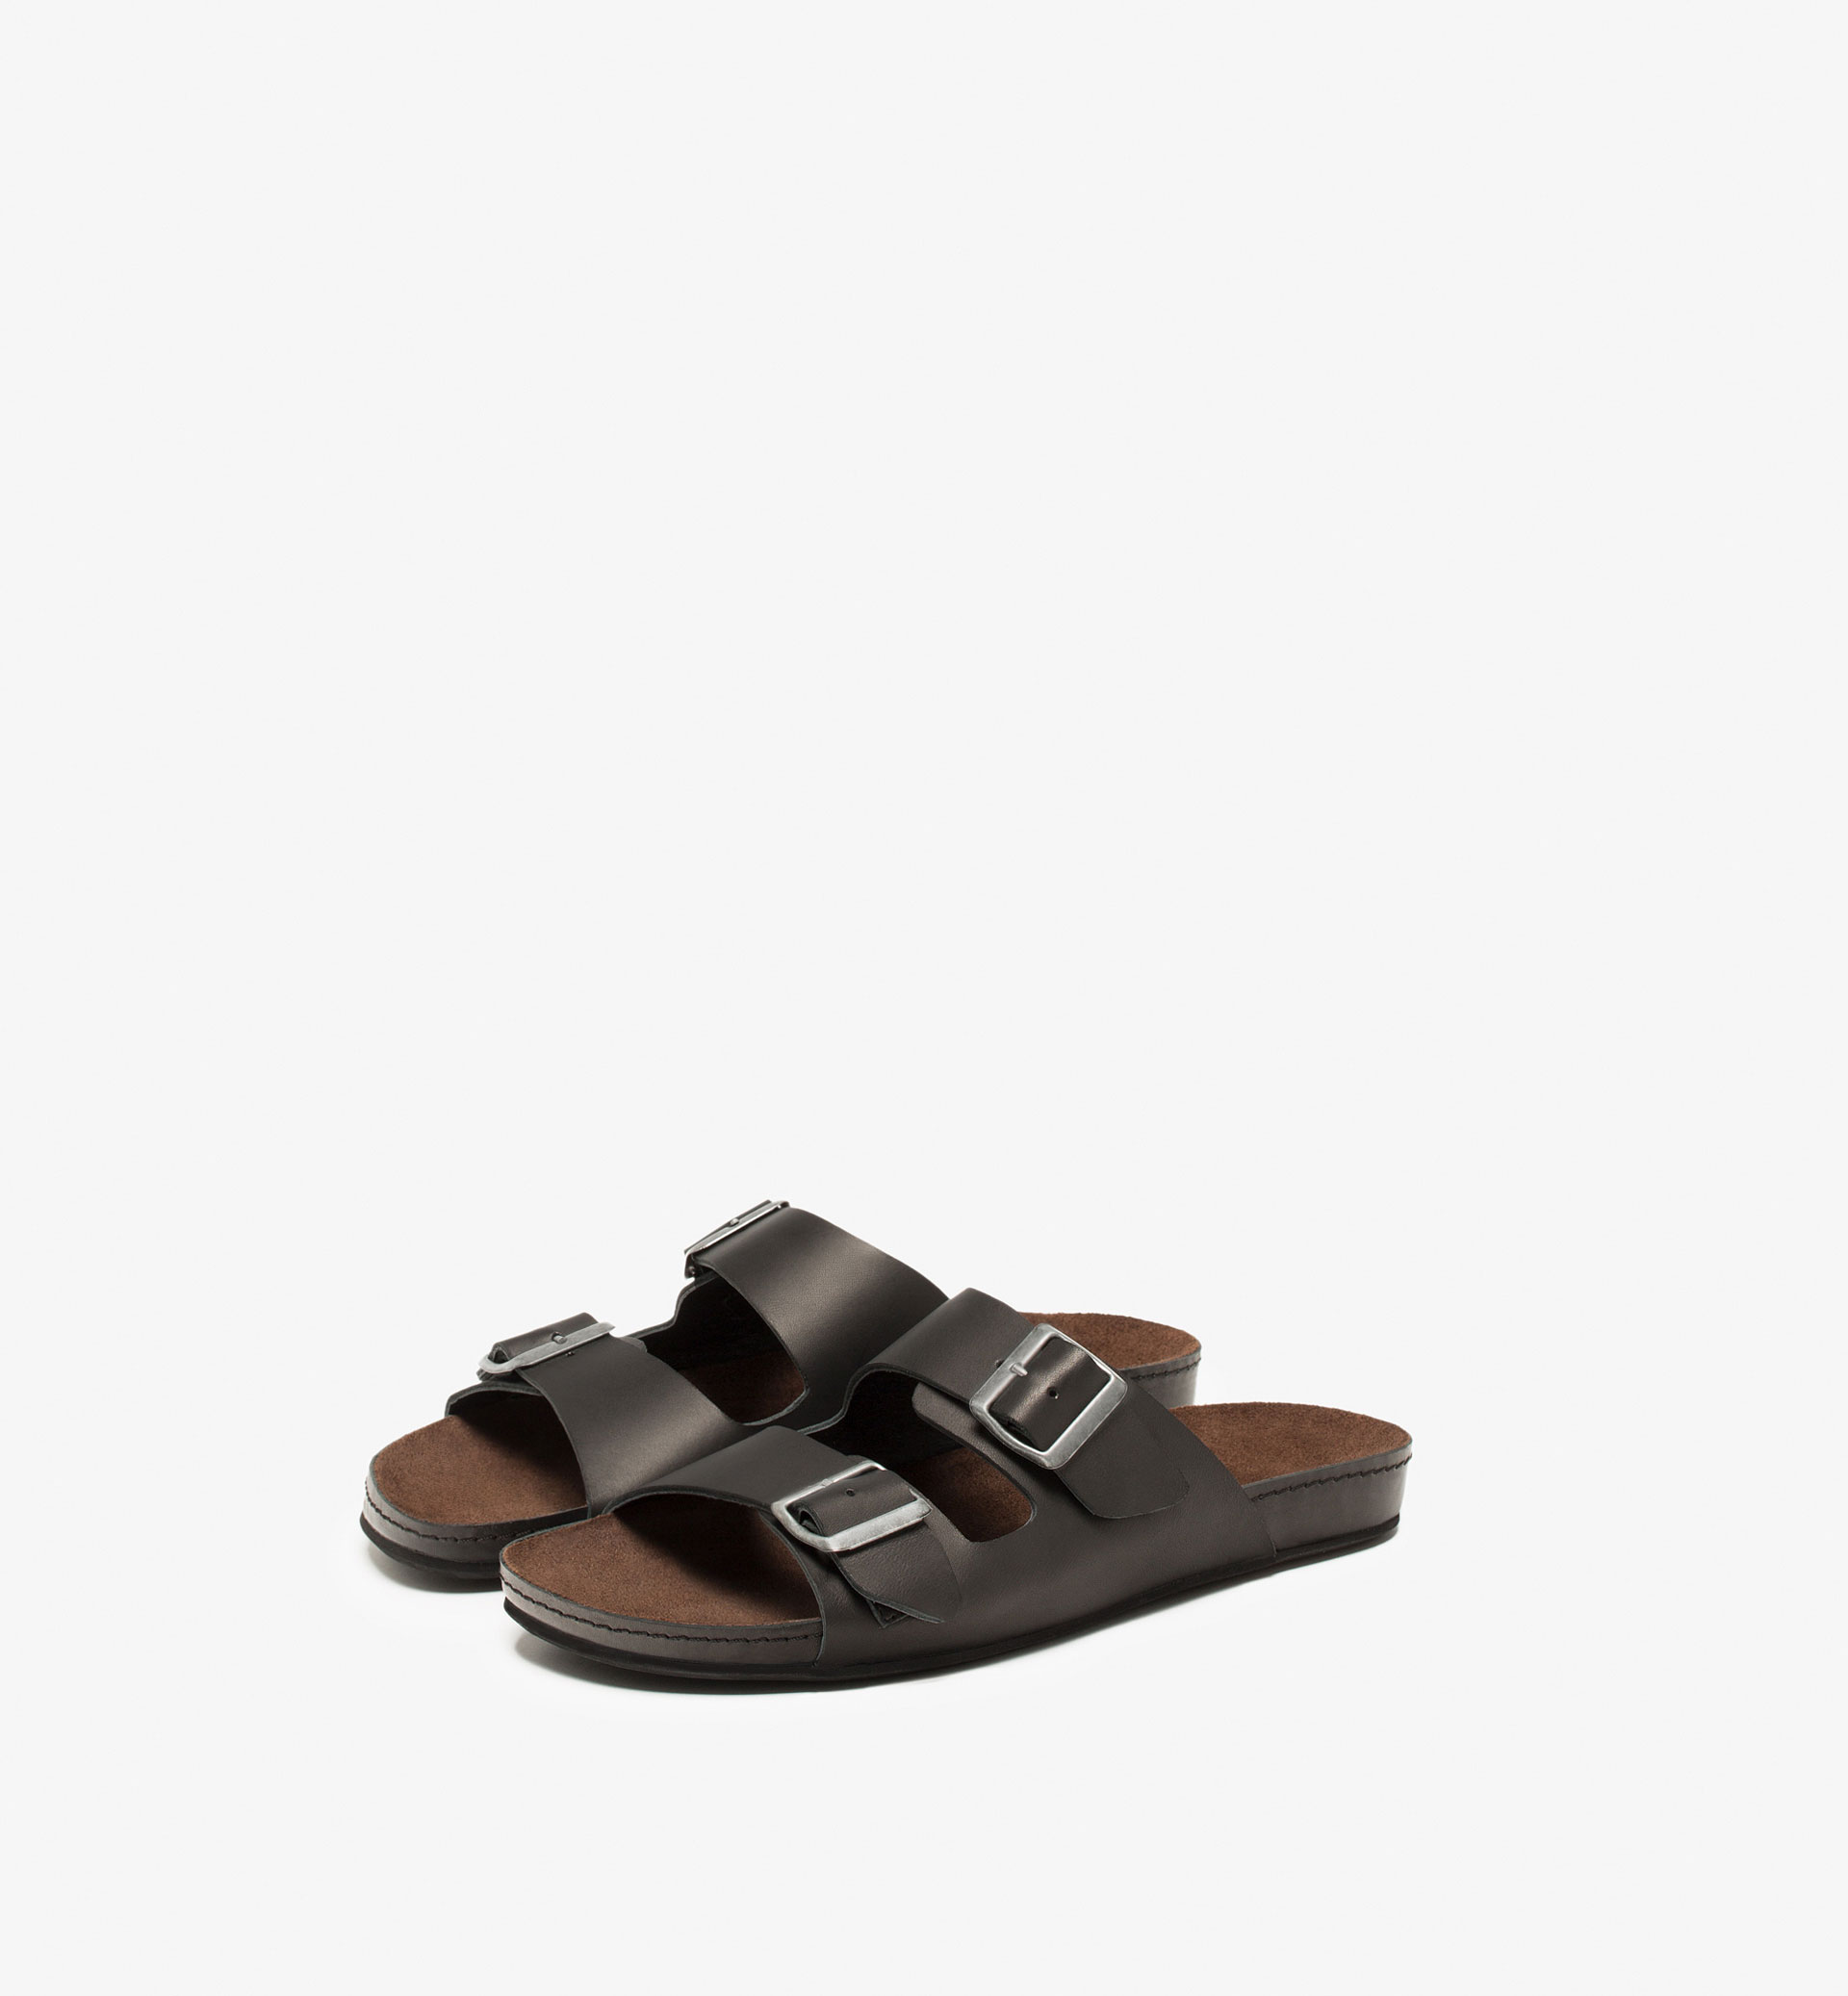 SOFT LEATHER SANDALS WITH A DOUBLE BUCKLE